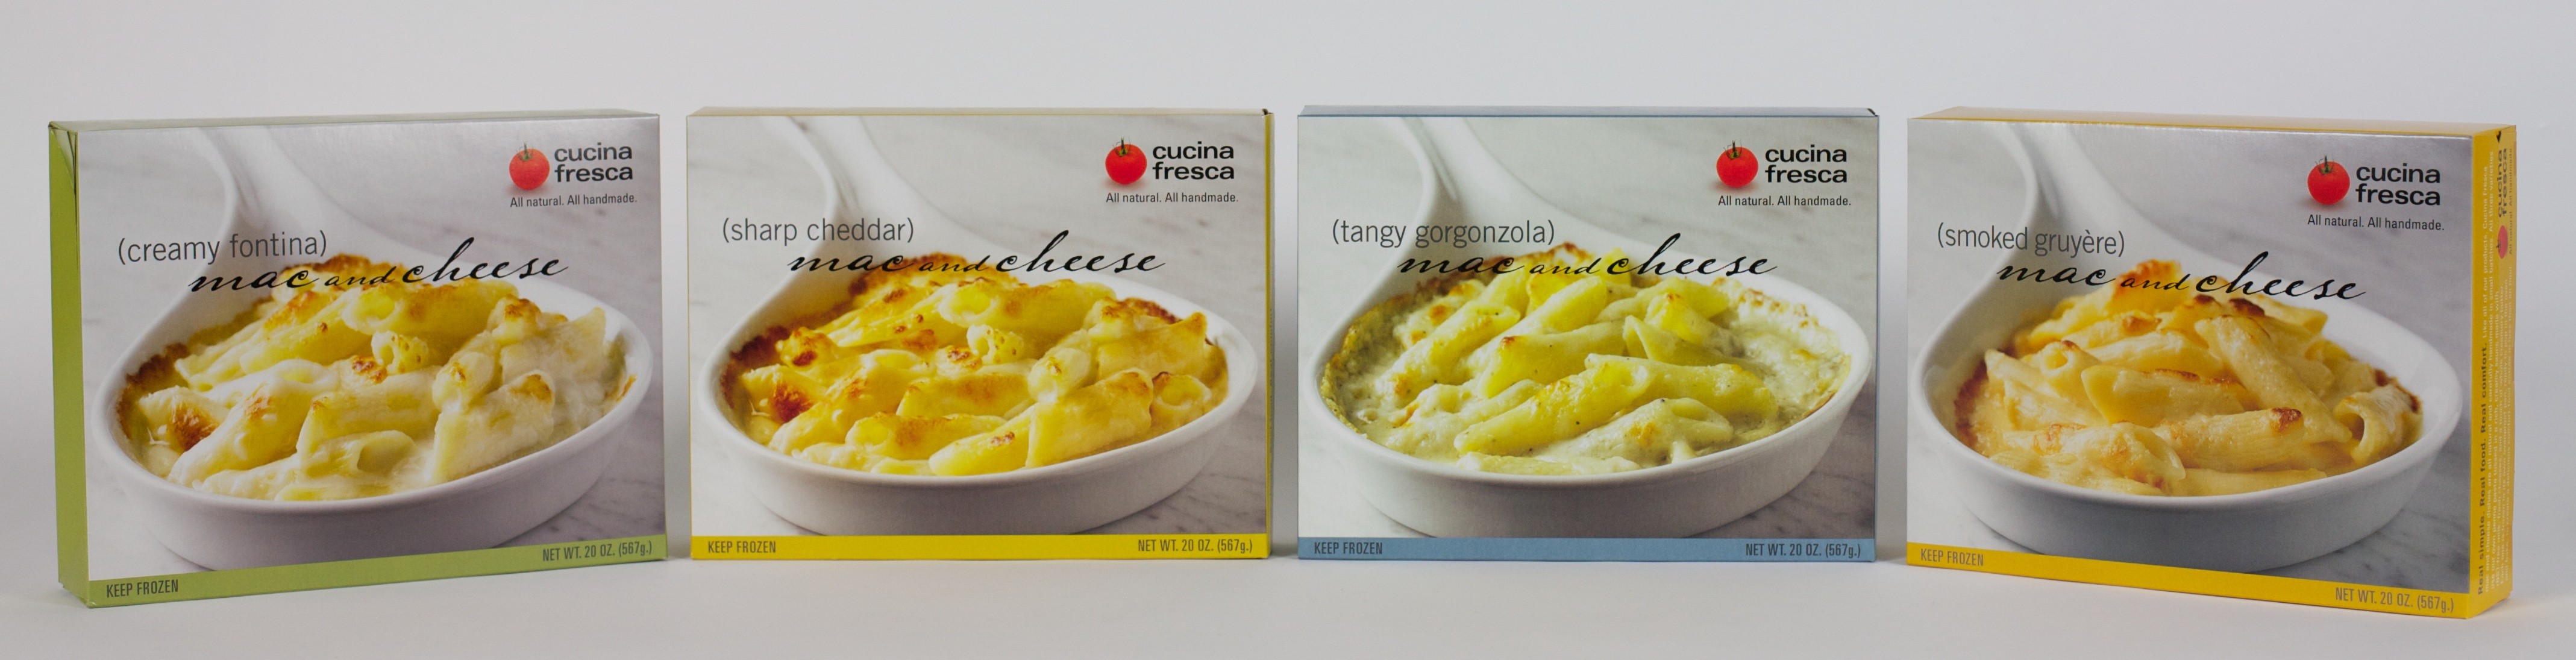 Cucina Fredda Tasty Treat Of The Day Cucina Fresca Gourmet Mac And